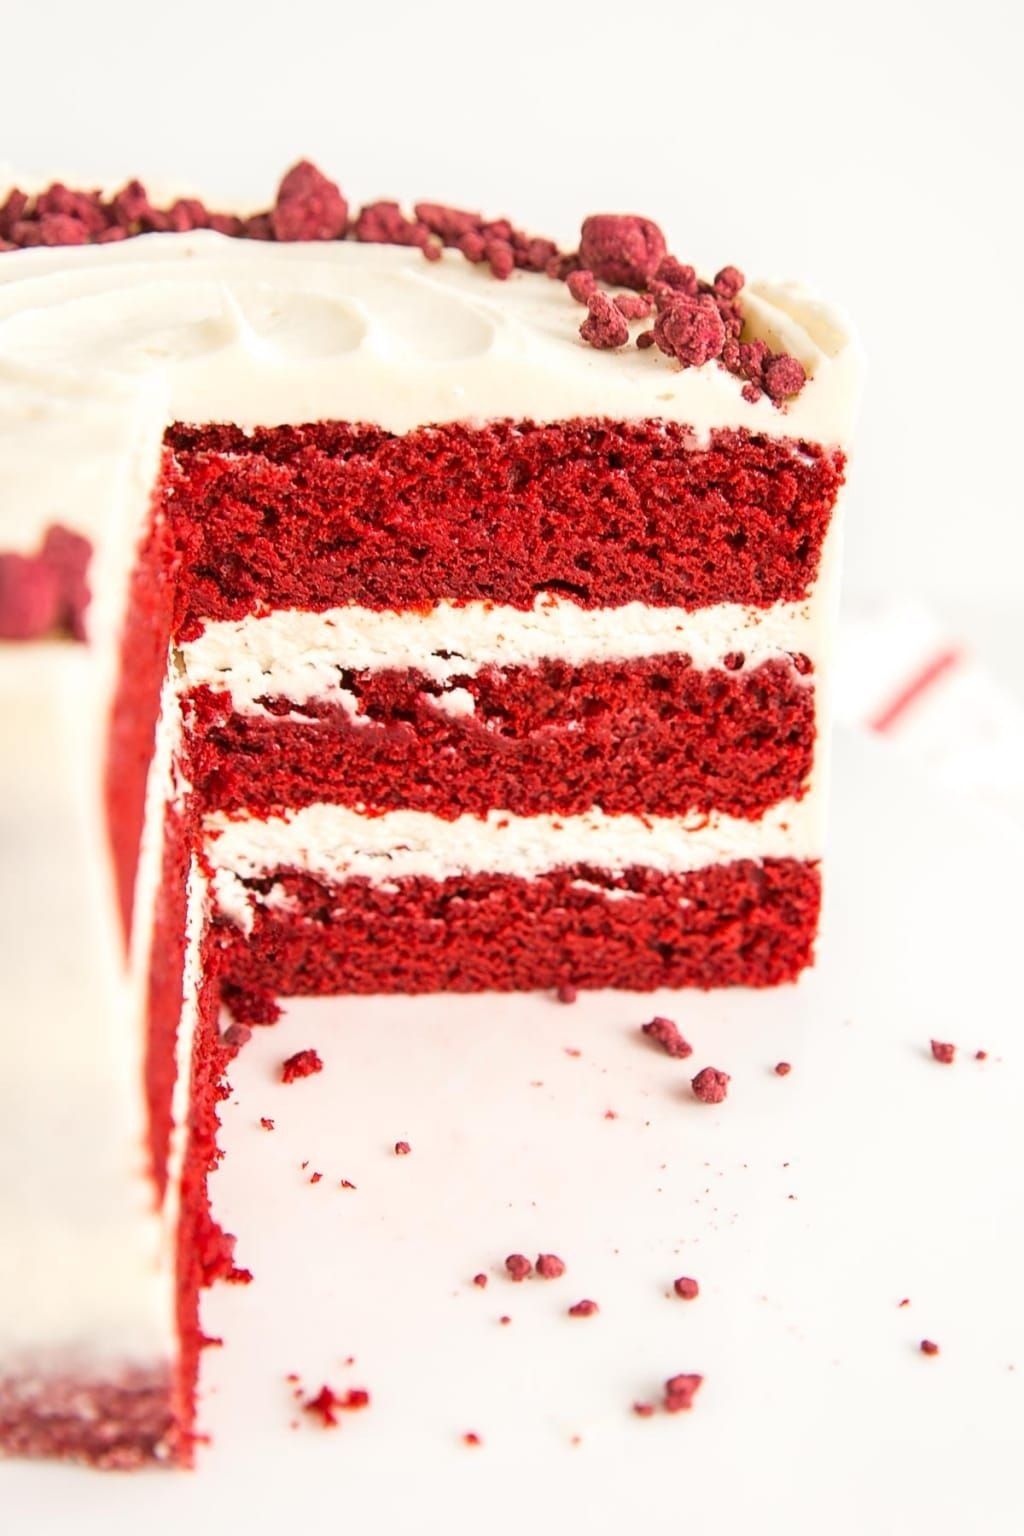 Originally Back In The 1800 S The Color Of Red Velvet Cake Was Due To Non Dutched Anthocyanin Rich Cocoa Whi In 2020 Red Velvet Cake Red Velvet Cake Recipe Red Cake